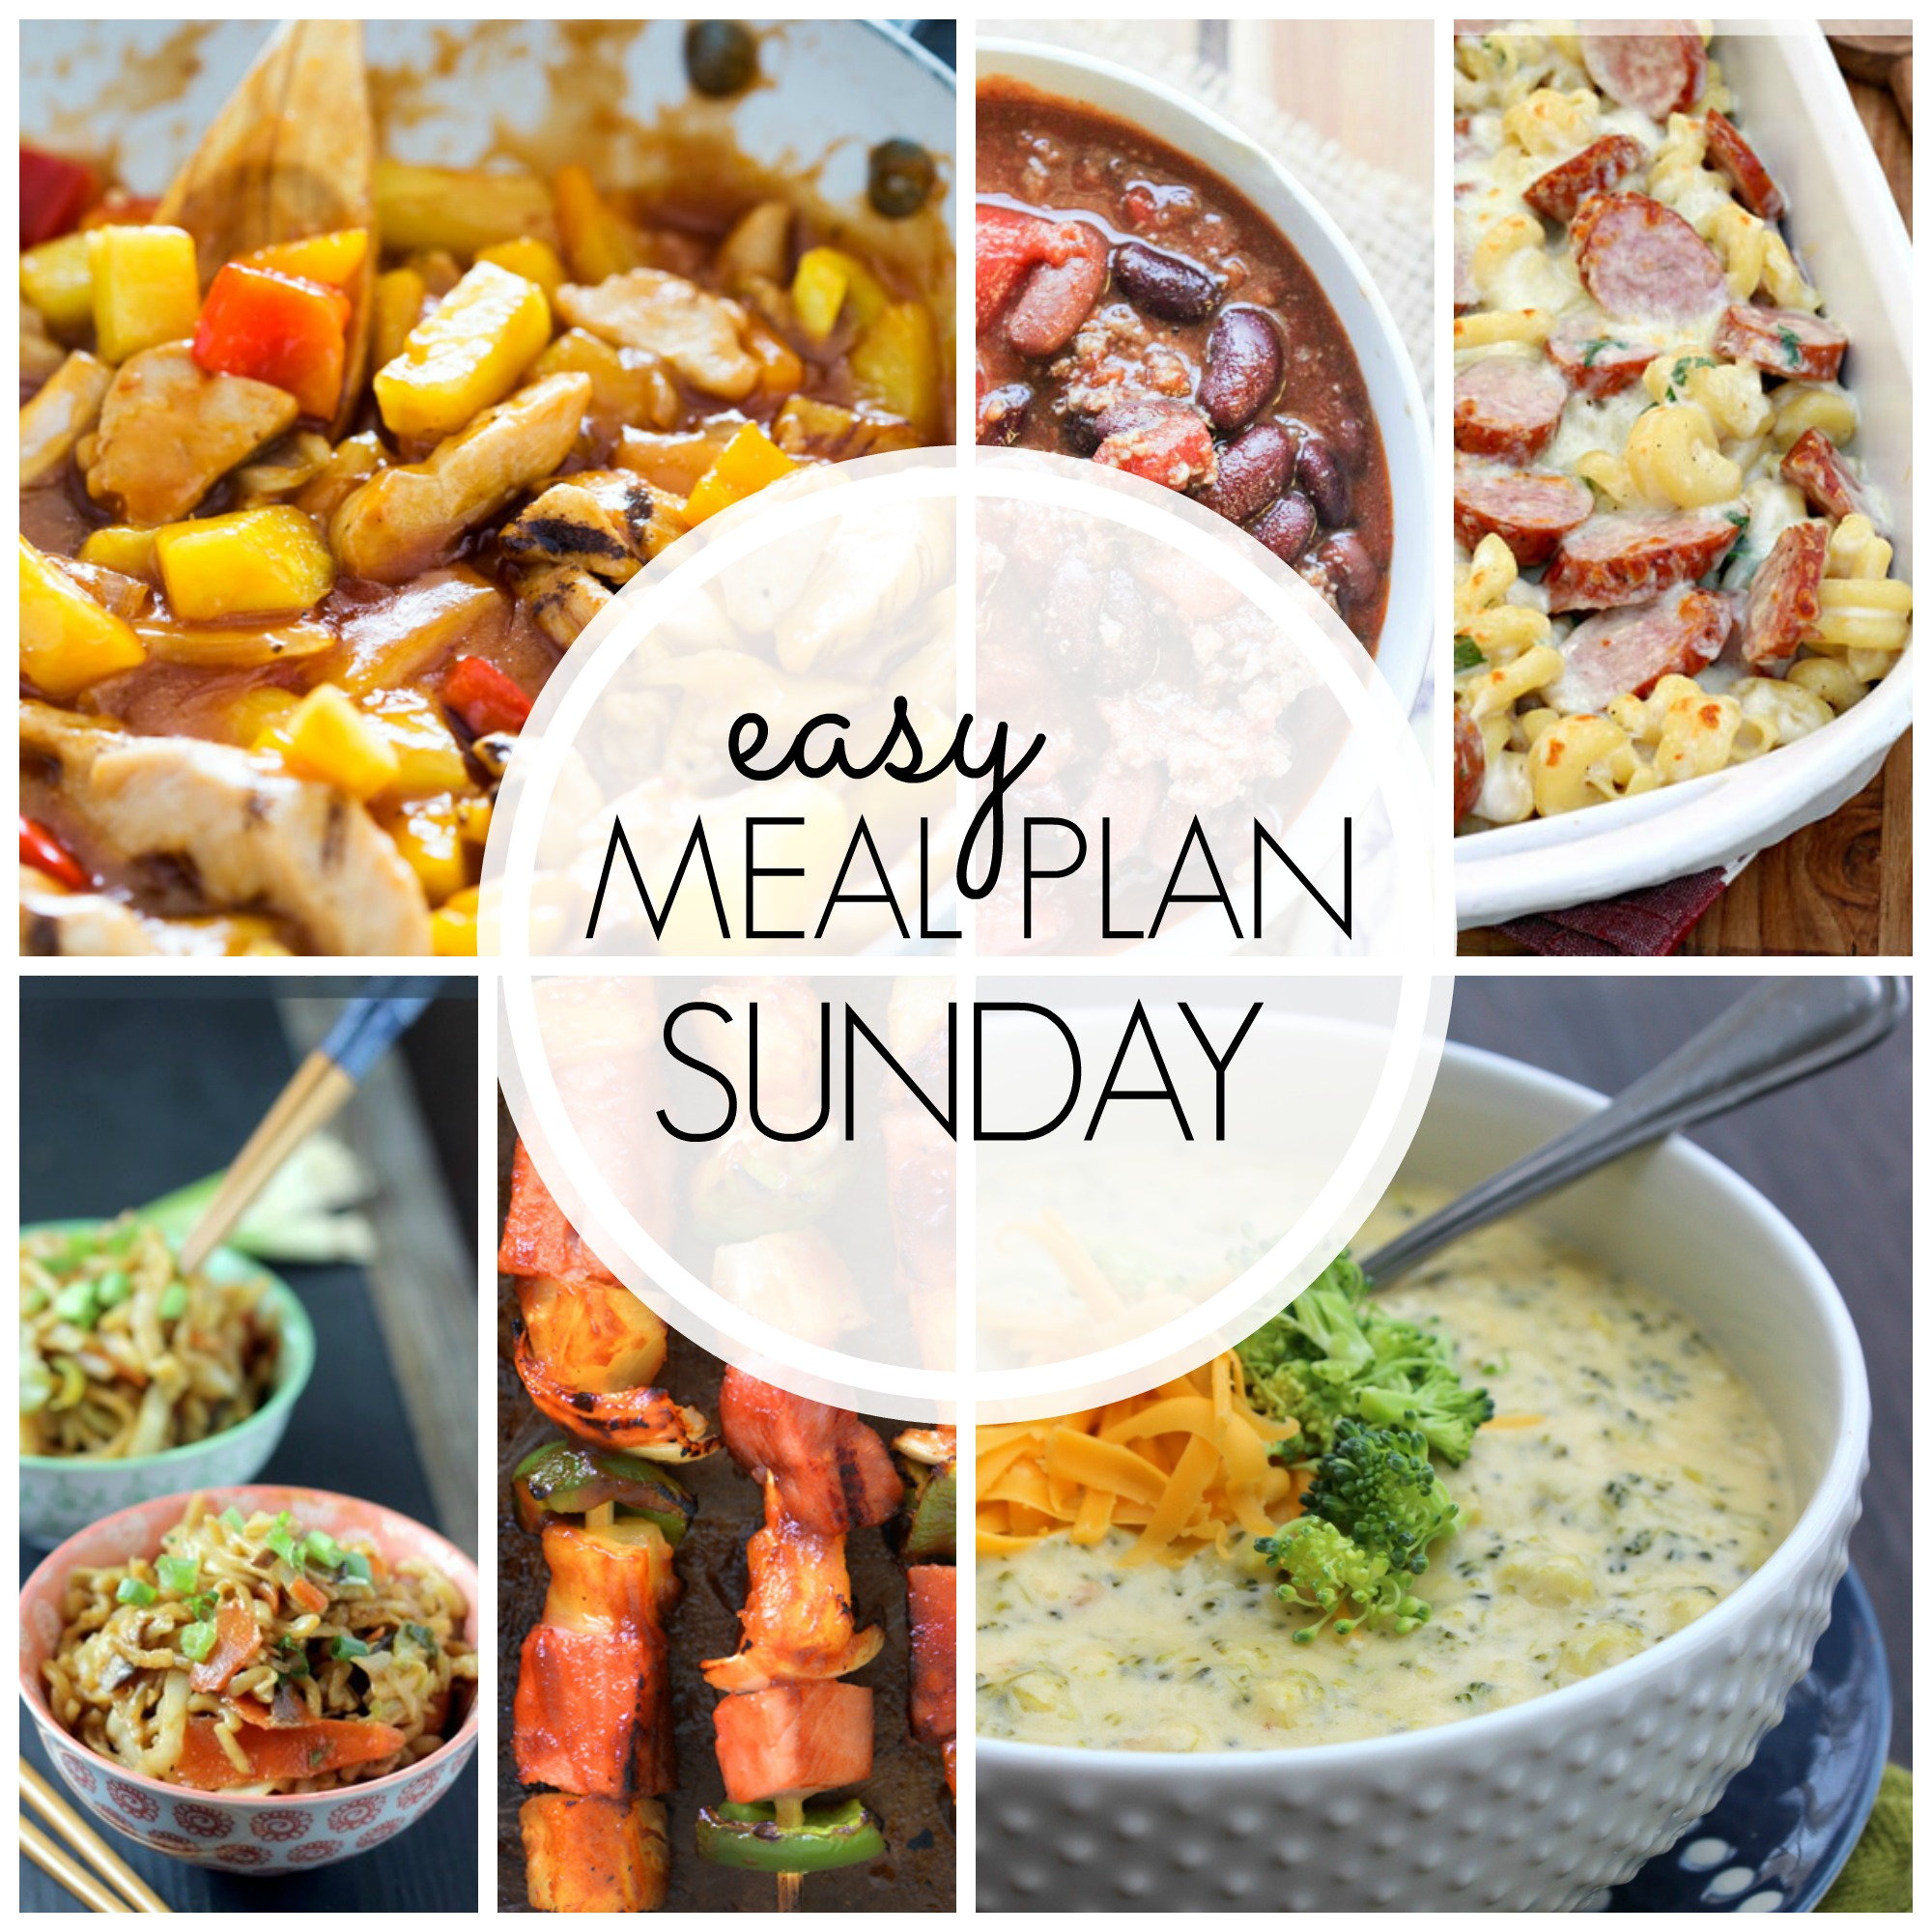 Easy Meal Plan Sunday #45